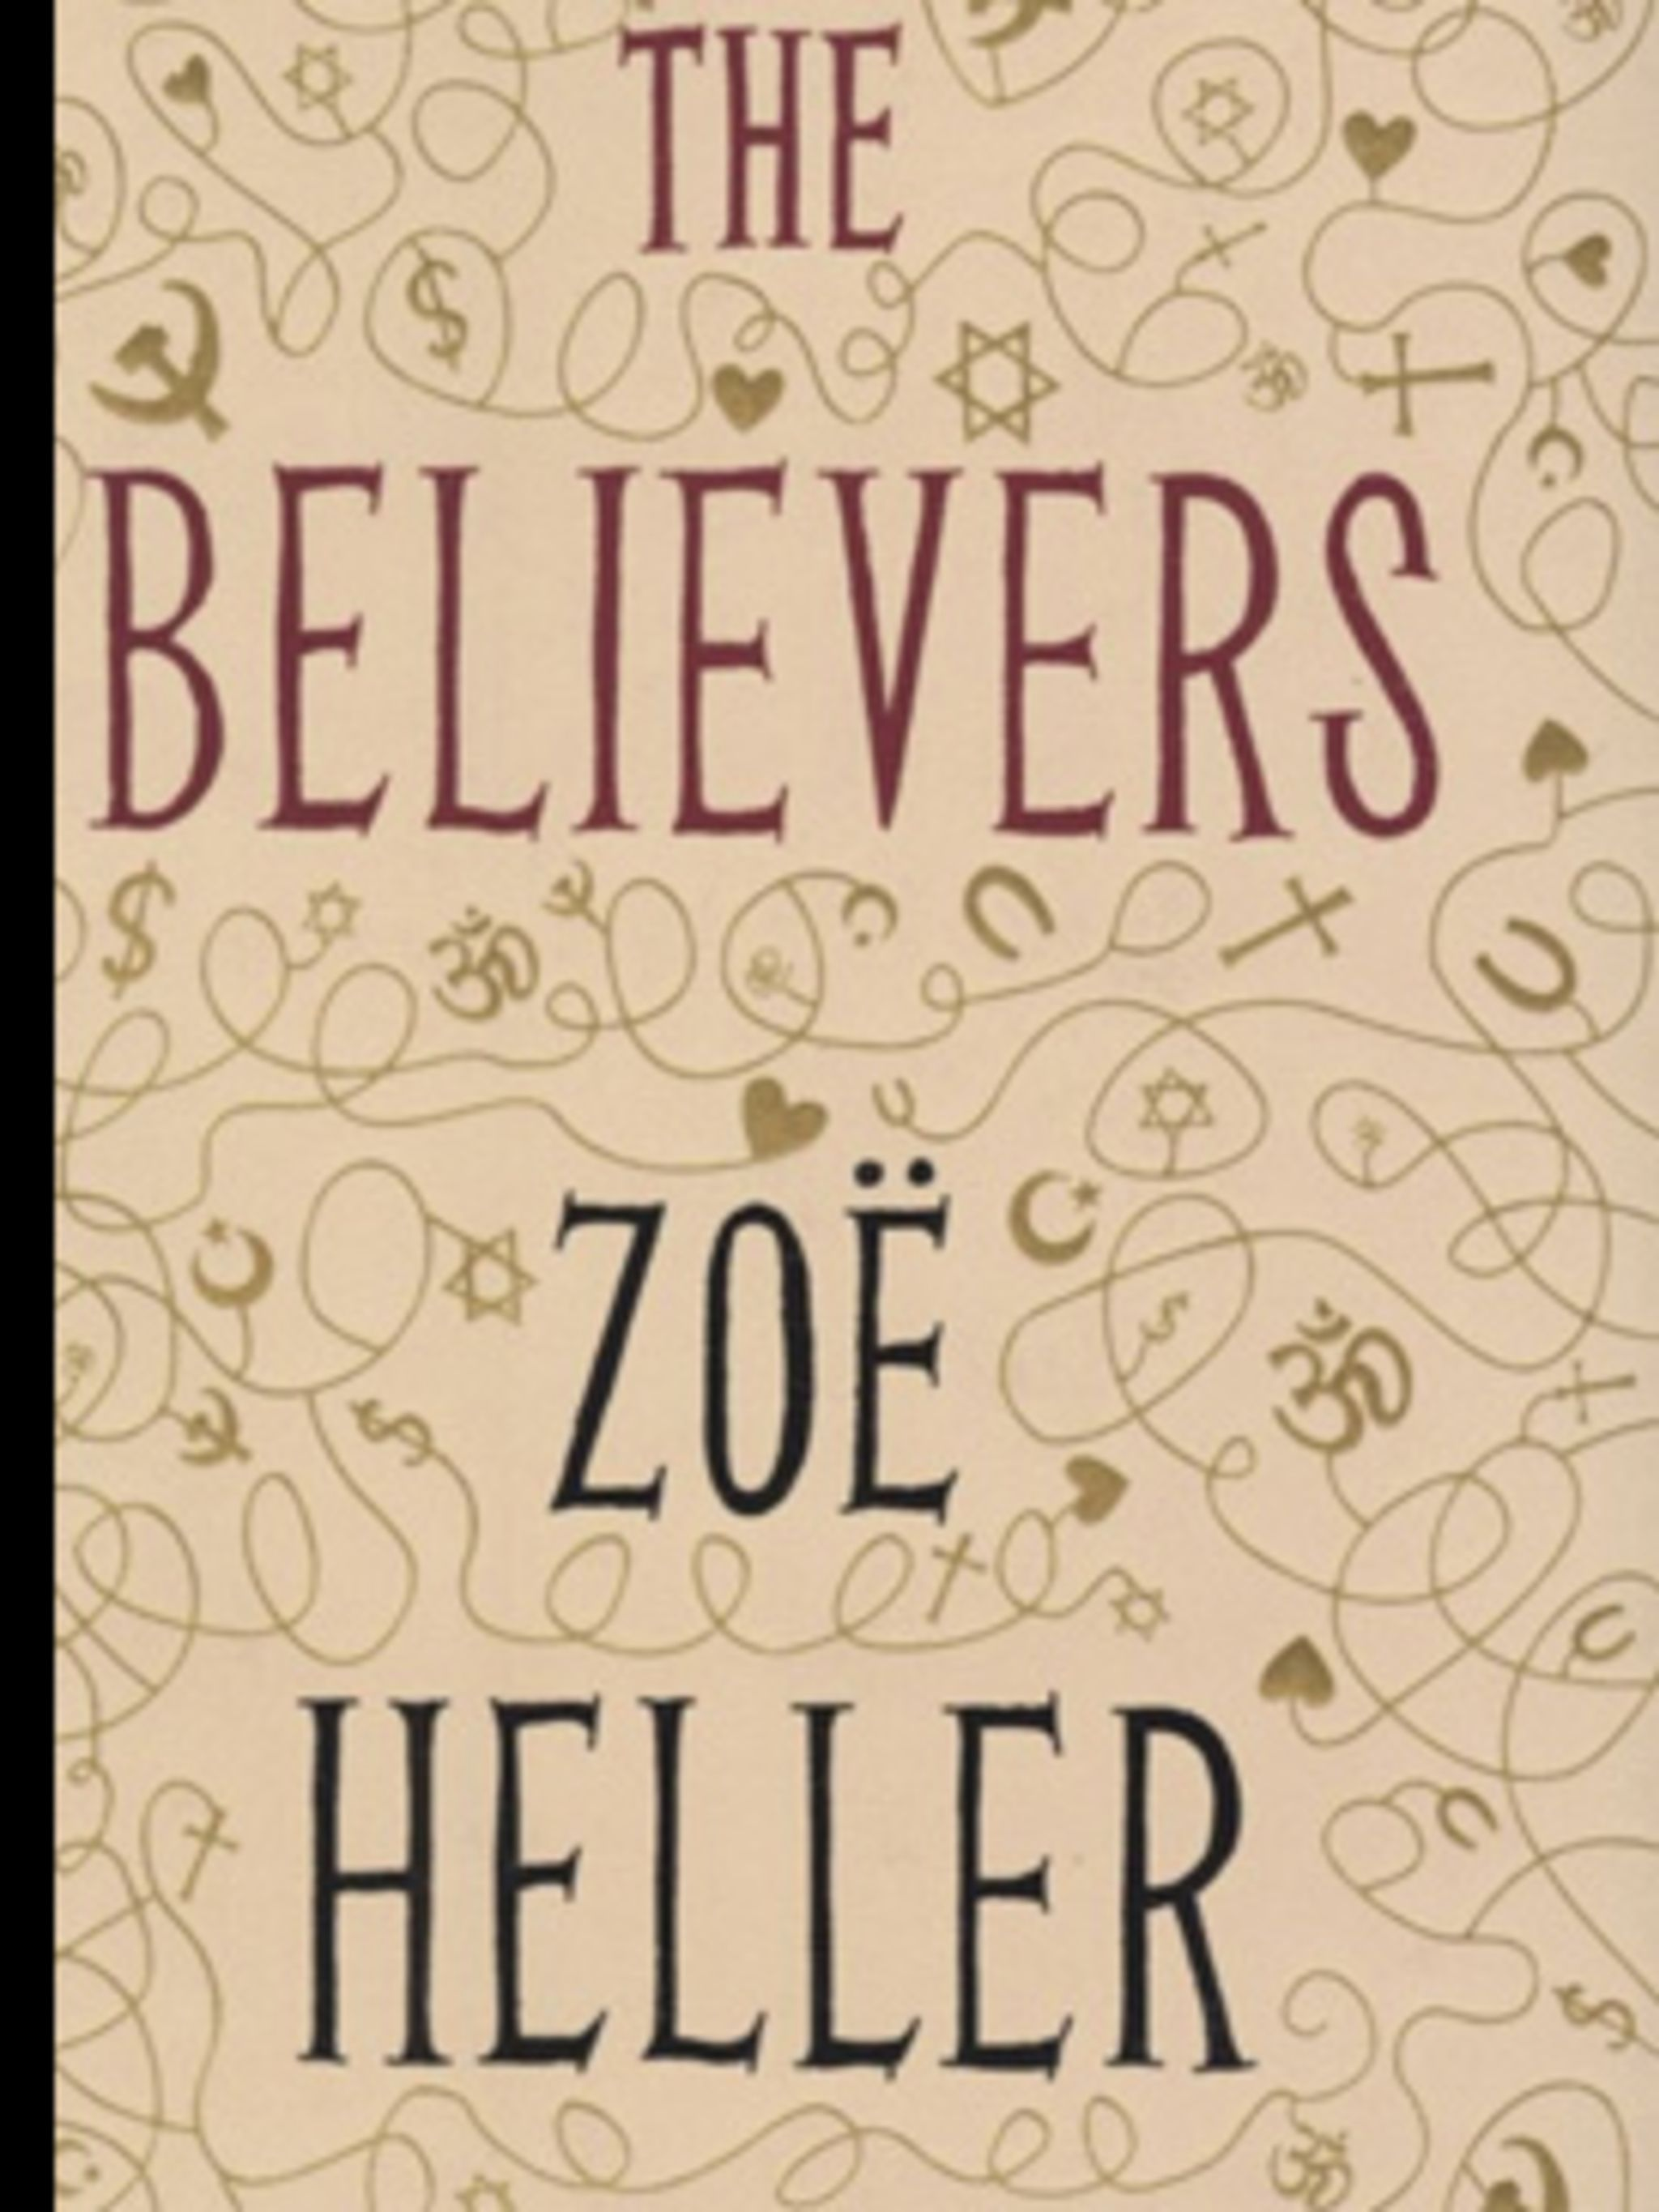 "<p>The Believers, £8.49 by Zoe Heller at<a href=""http://www.amazon.co.uk/Believers-Zo%C3%AB-Heller/dp/0670916129/ref=sr_1_1?ie=UTF8&s=books&qid=1236093105&sr=1-1""> Amazon</a></p>"